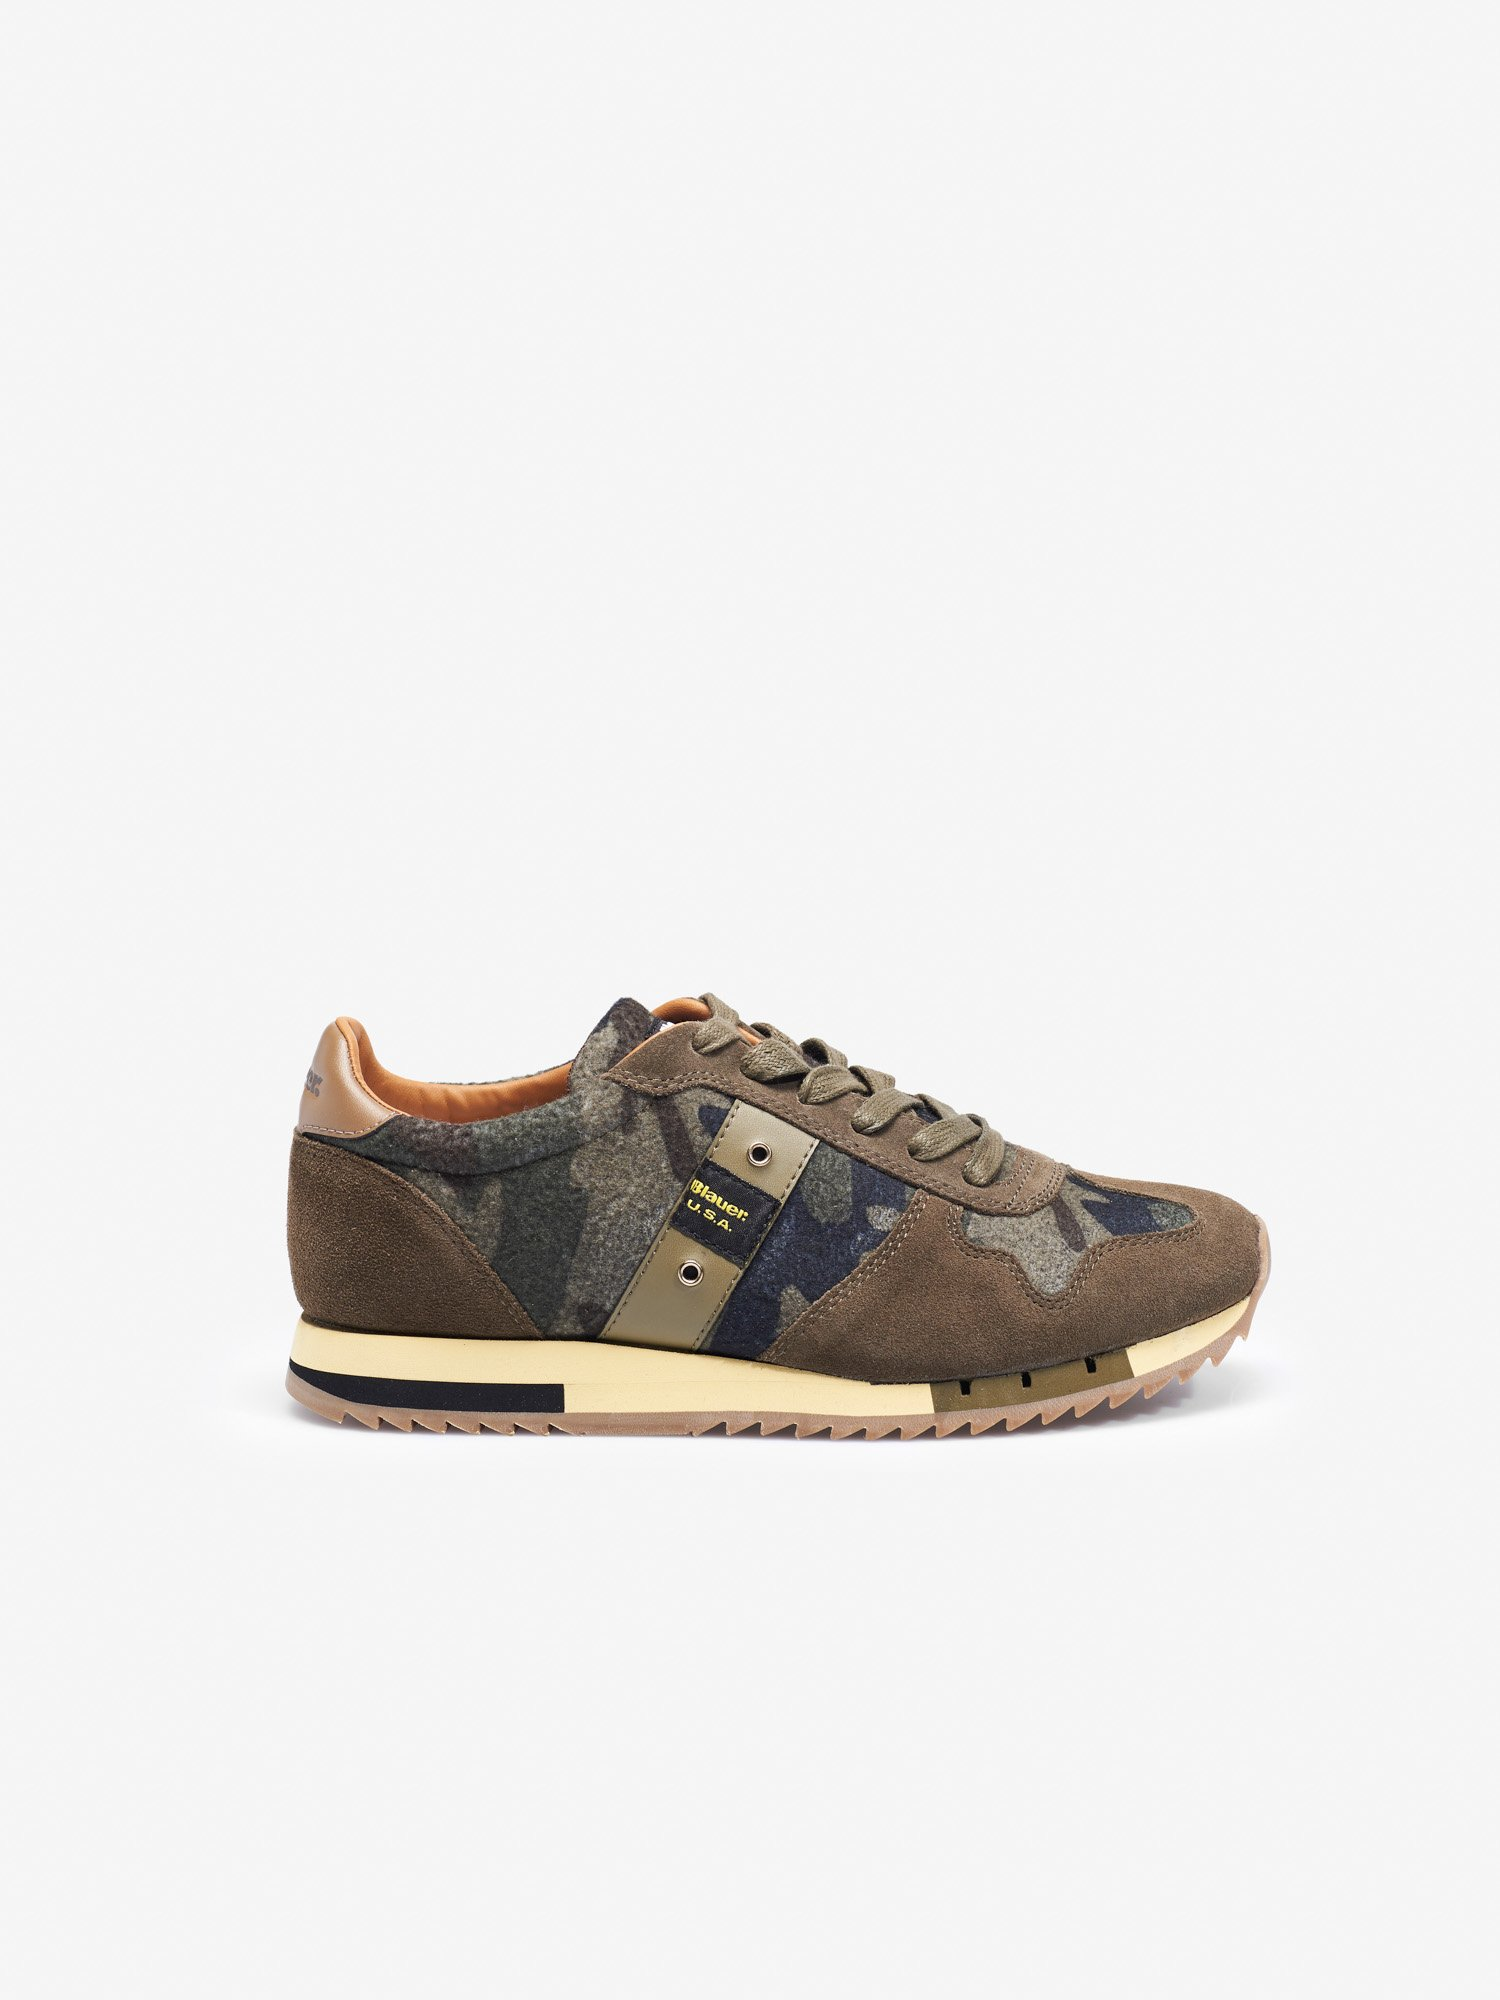 Blauer - QUINCY MILITARY SNEAKER LOW - Waldgrün - Blauer